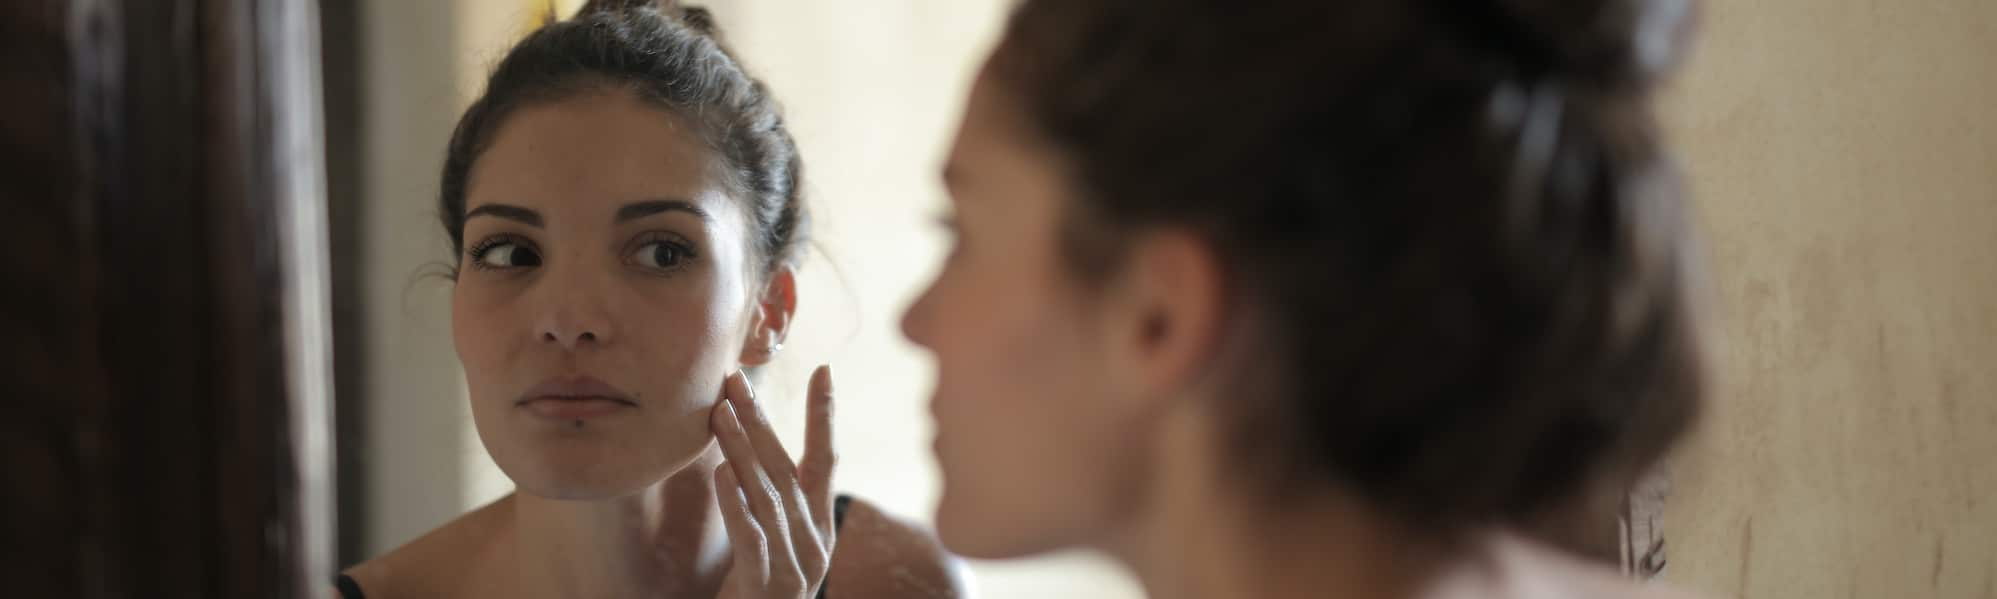 woman checking skin in the mirror